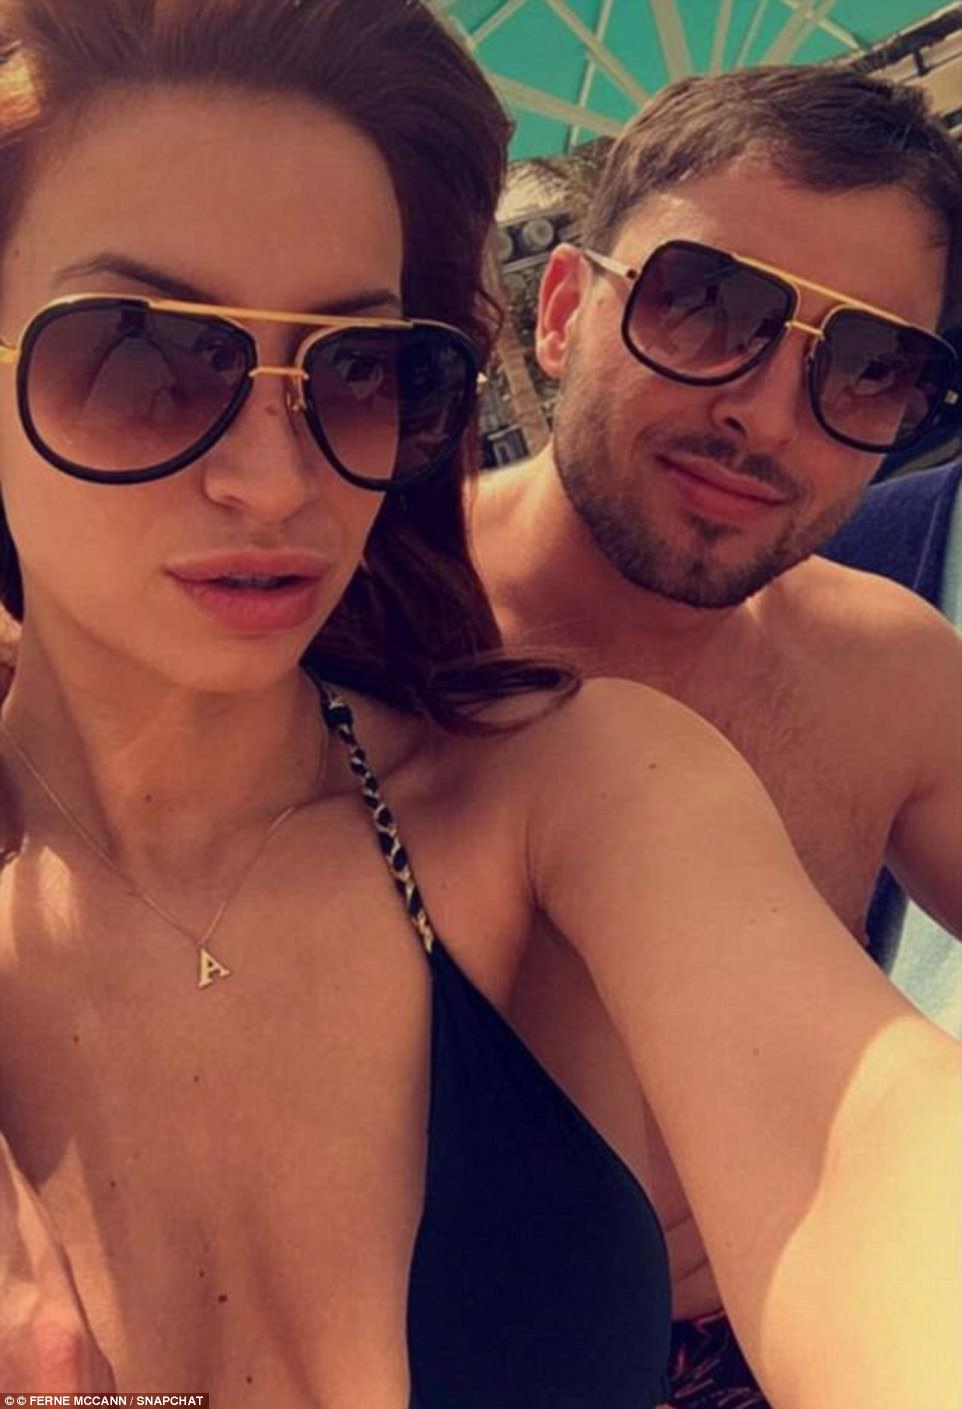 Happier times: Ferne had enjoyed a brief romance in June 2016, before confirming they had rekindled their relationship in March earlier this year - she had spoken of her hopes to move in with her ex-beau and claimed he had been 'The One'